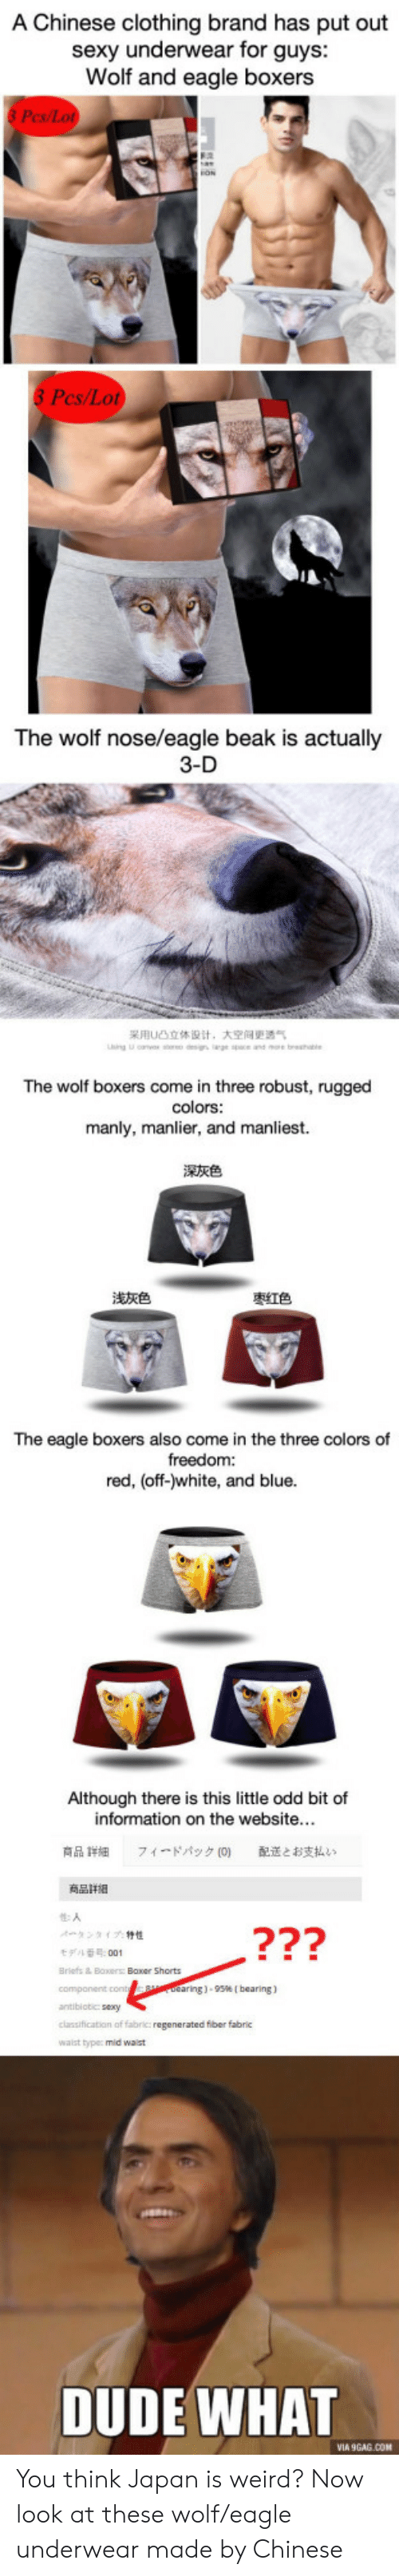 the eagle: A Chinese clothing brand has put out  sexy underwear for guys  Wolf and eagle boxers  3 Pes/Lot  The wolf nose/eagle beak is actually  3-D  采用U凸立体设计,  大空间更透气  The wolf boxers come in three robust, rugged  colors  manly, manlier, and manliest.  深灰色  浅灰色  枣红色  The eagle boxers also come in the three colors of  freedom:  red, (off-)white, and blue.  Although there is this little odd bit of  information on t  he website.  商品詳細  フィードバック  配送とお支払い  ベータンタイプ特性  モデル番 . 001  Briefs & Boxers Boxer Shorts  component con  ntibiotic sexy  classification of fabric: regenerated fiber fabric  walst typec mid wast  ring) . 95% [ bearing)  DUDE WHAT  VIA 9GAG CO You think Japan is weird? Now look at these wolf/eagle underwear made by Chinese